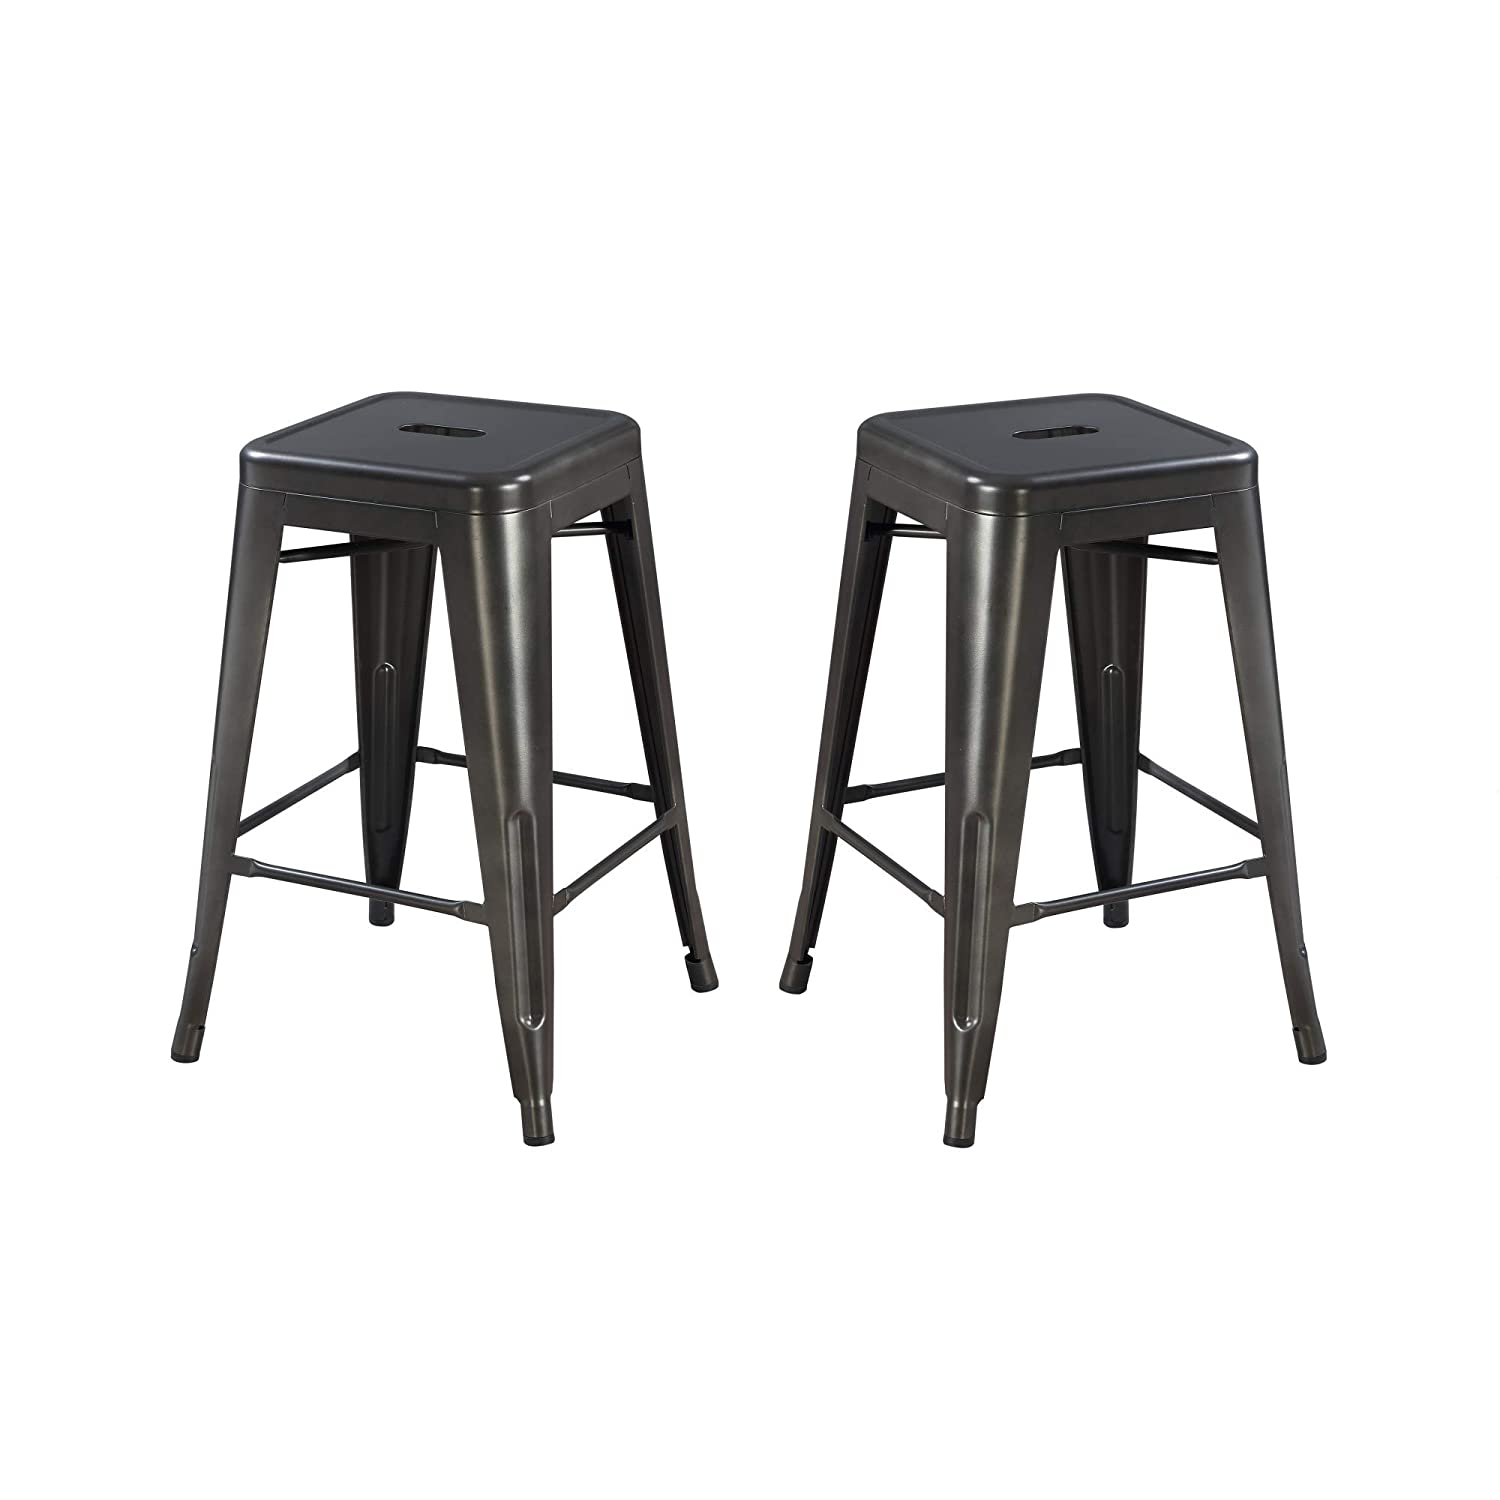 Archer 24 Bar Stool in Sleek Charcoal with All Metal Seat And Frame, Set of Two, by Artum Hill